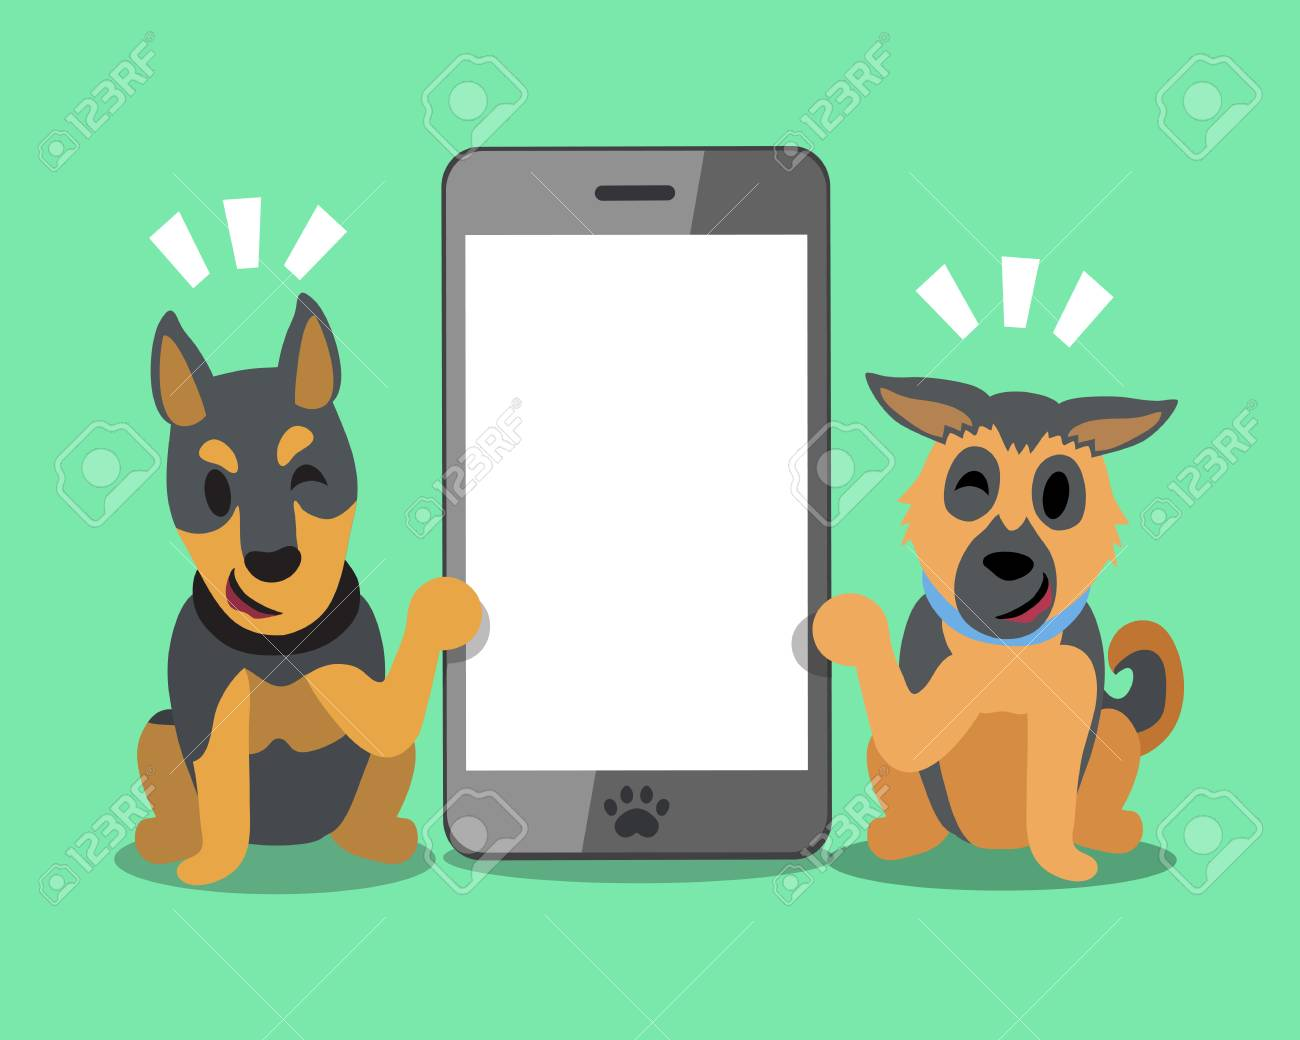 Cartoon Character German Shepherd And Doberman Dog With Smartphone